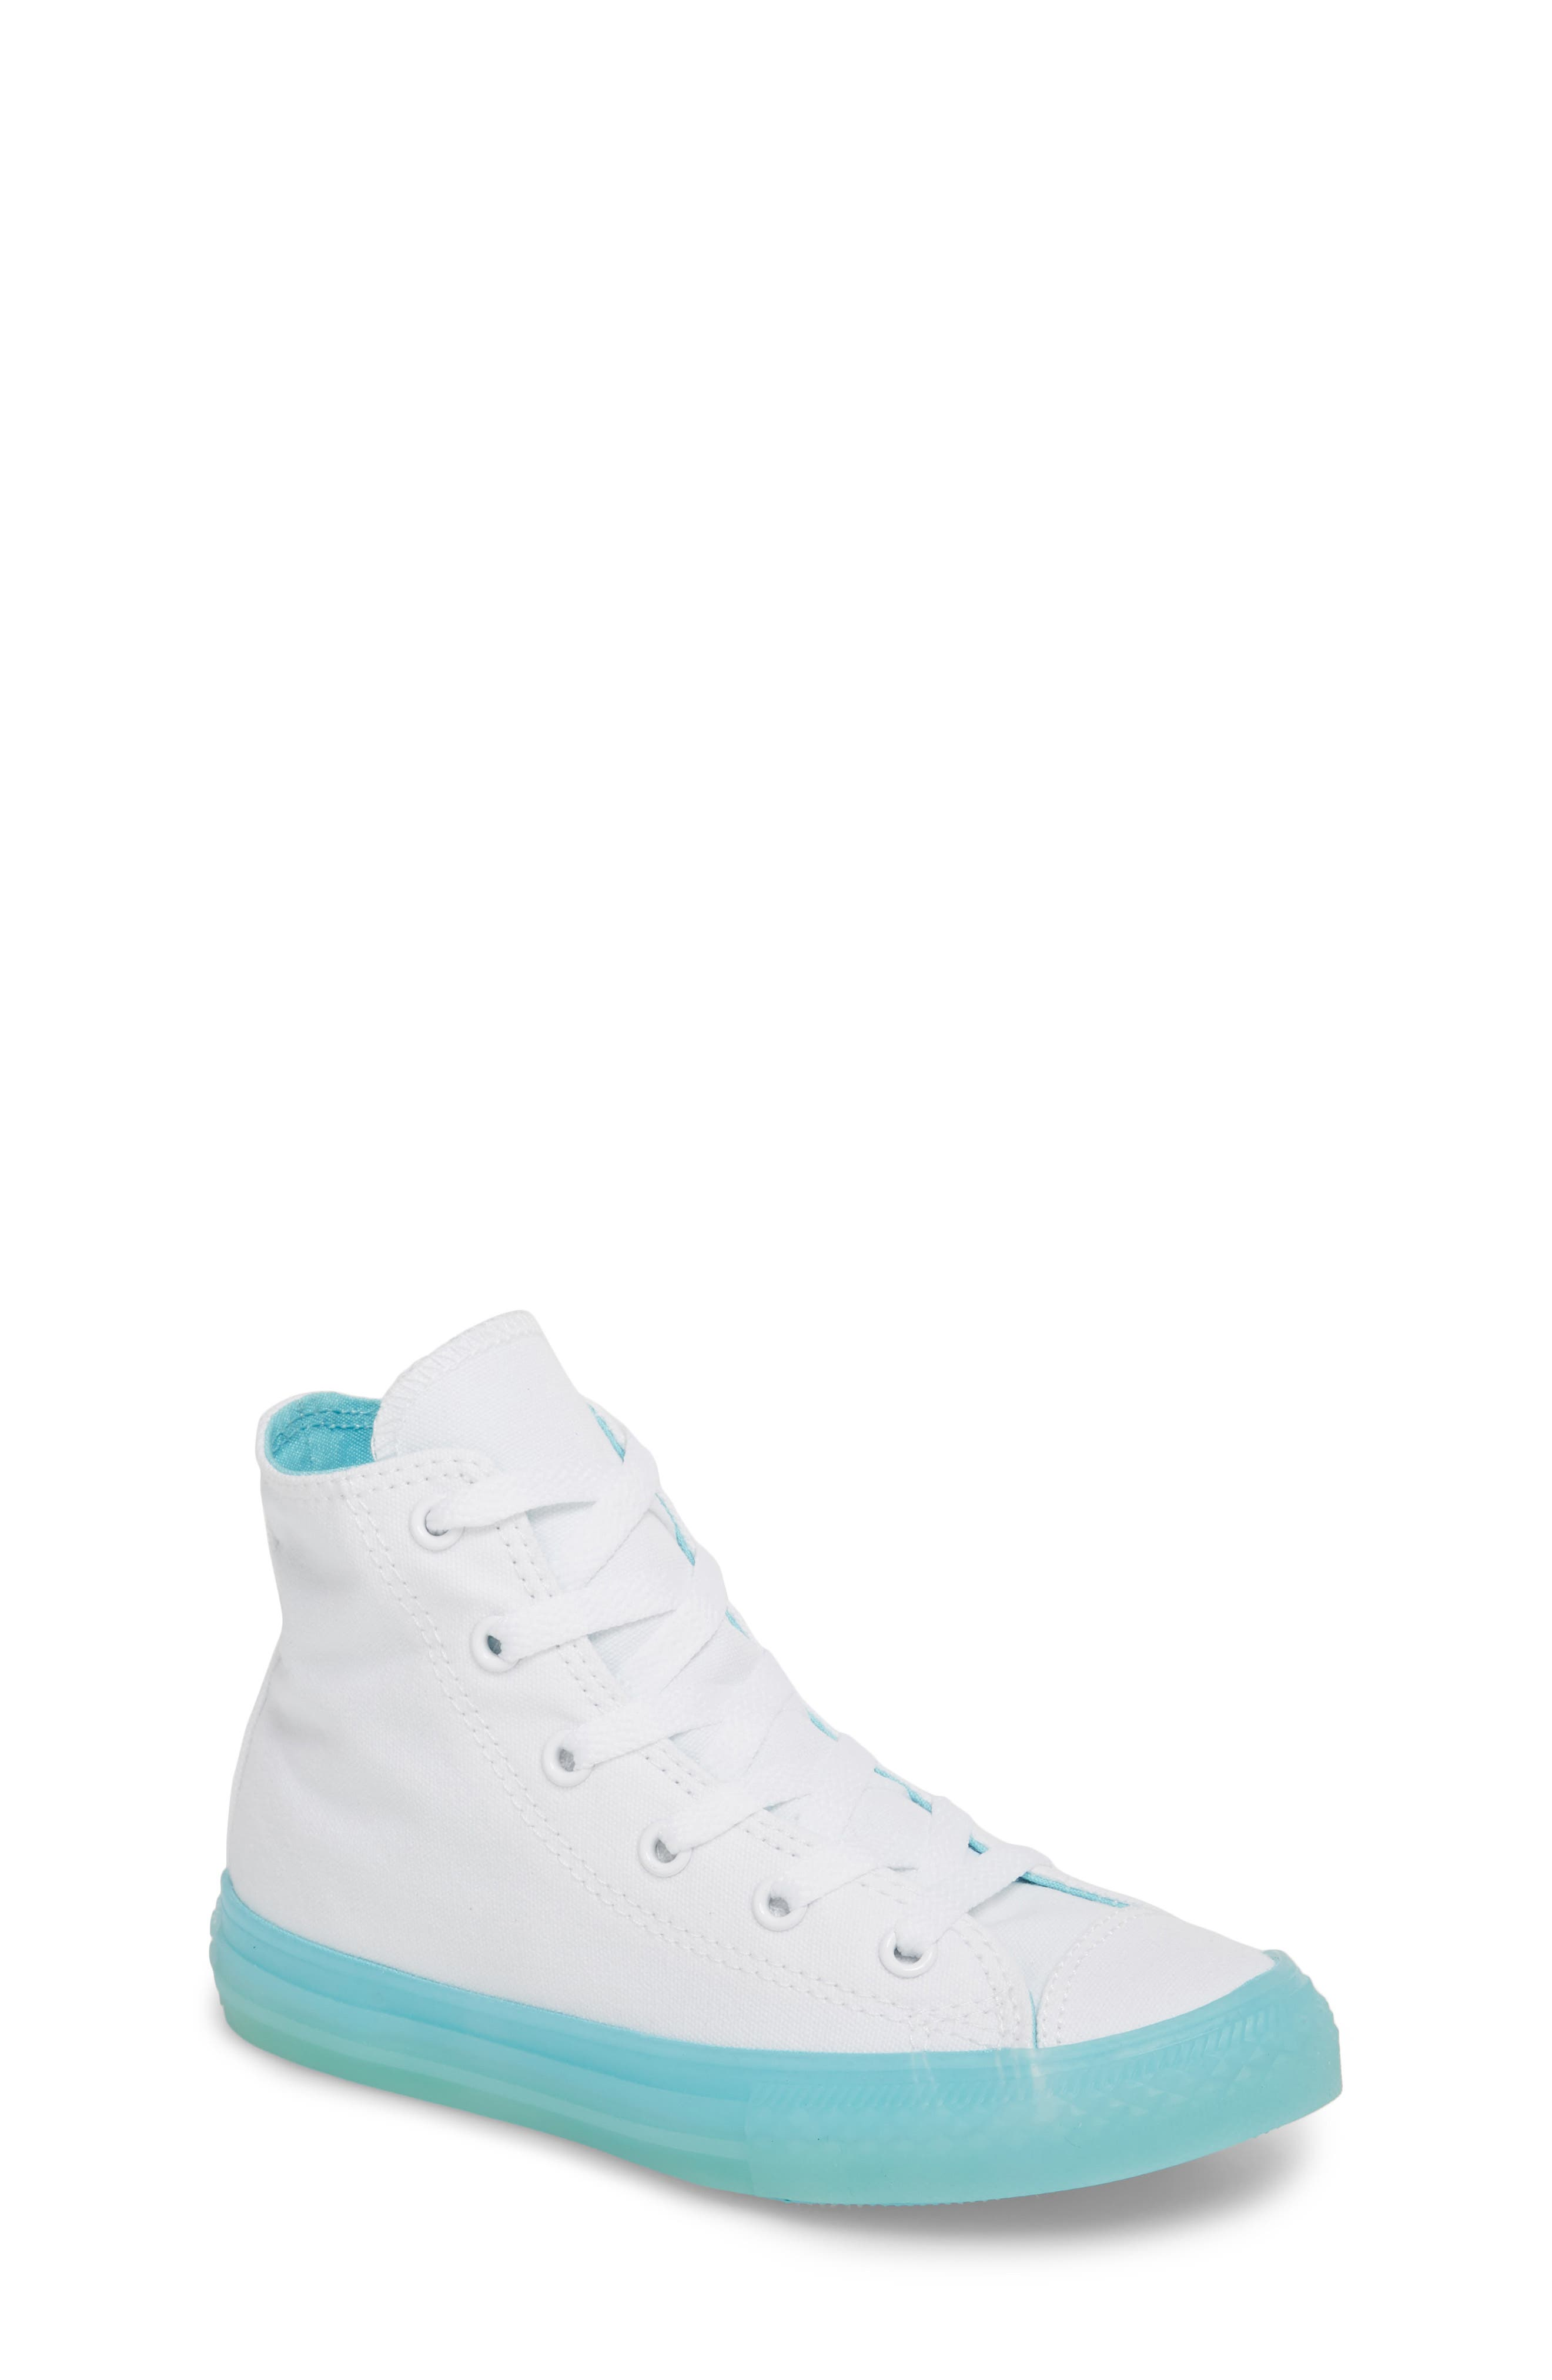 Chuck Taylor<sup>®</sup> All Star<sup>®</sup> Jelly High Top Sneaker,                             Main thumbnail 1, color,                             405